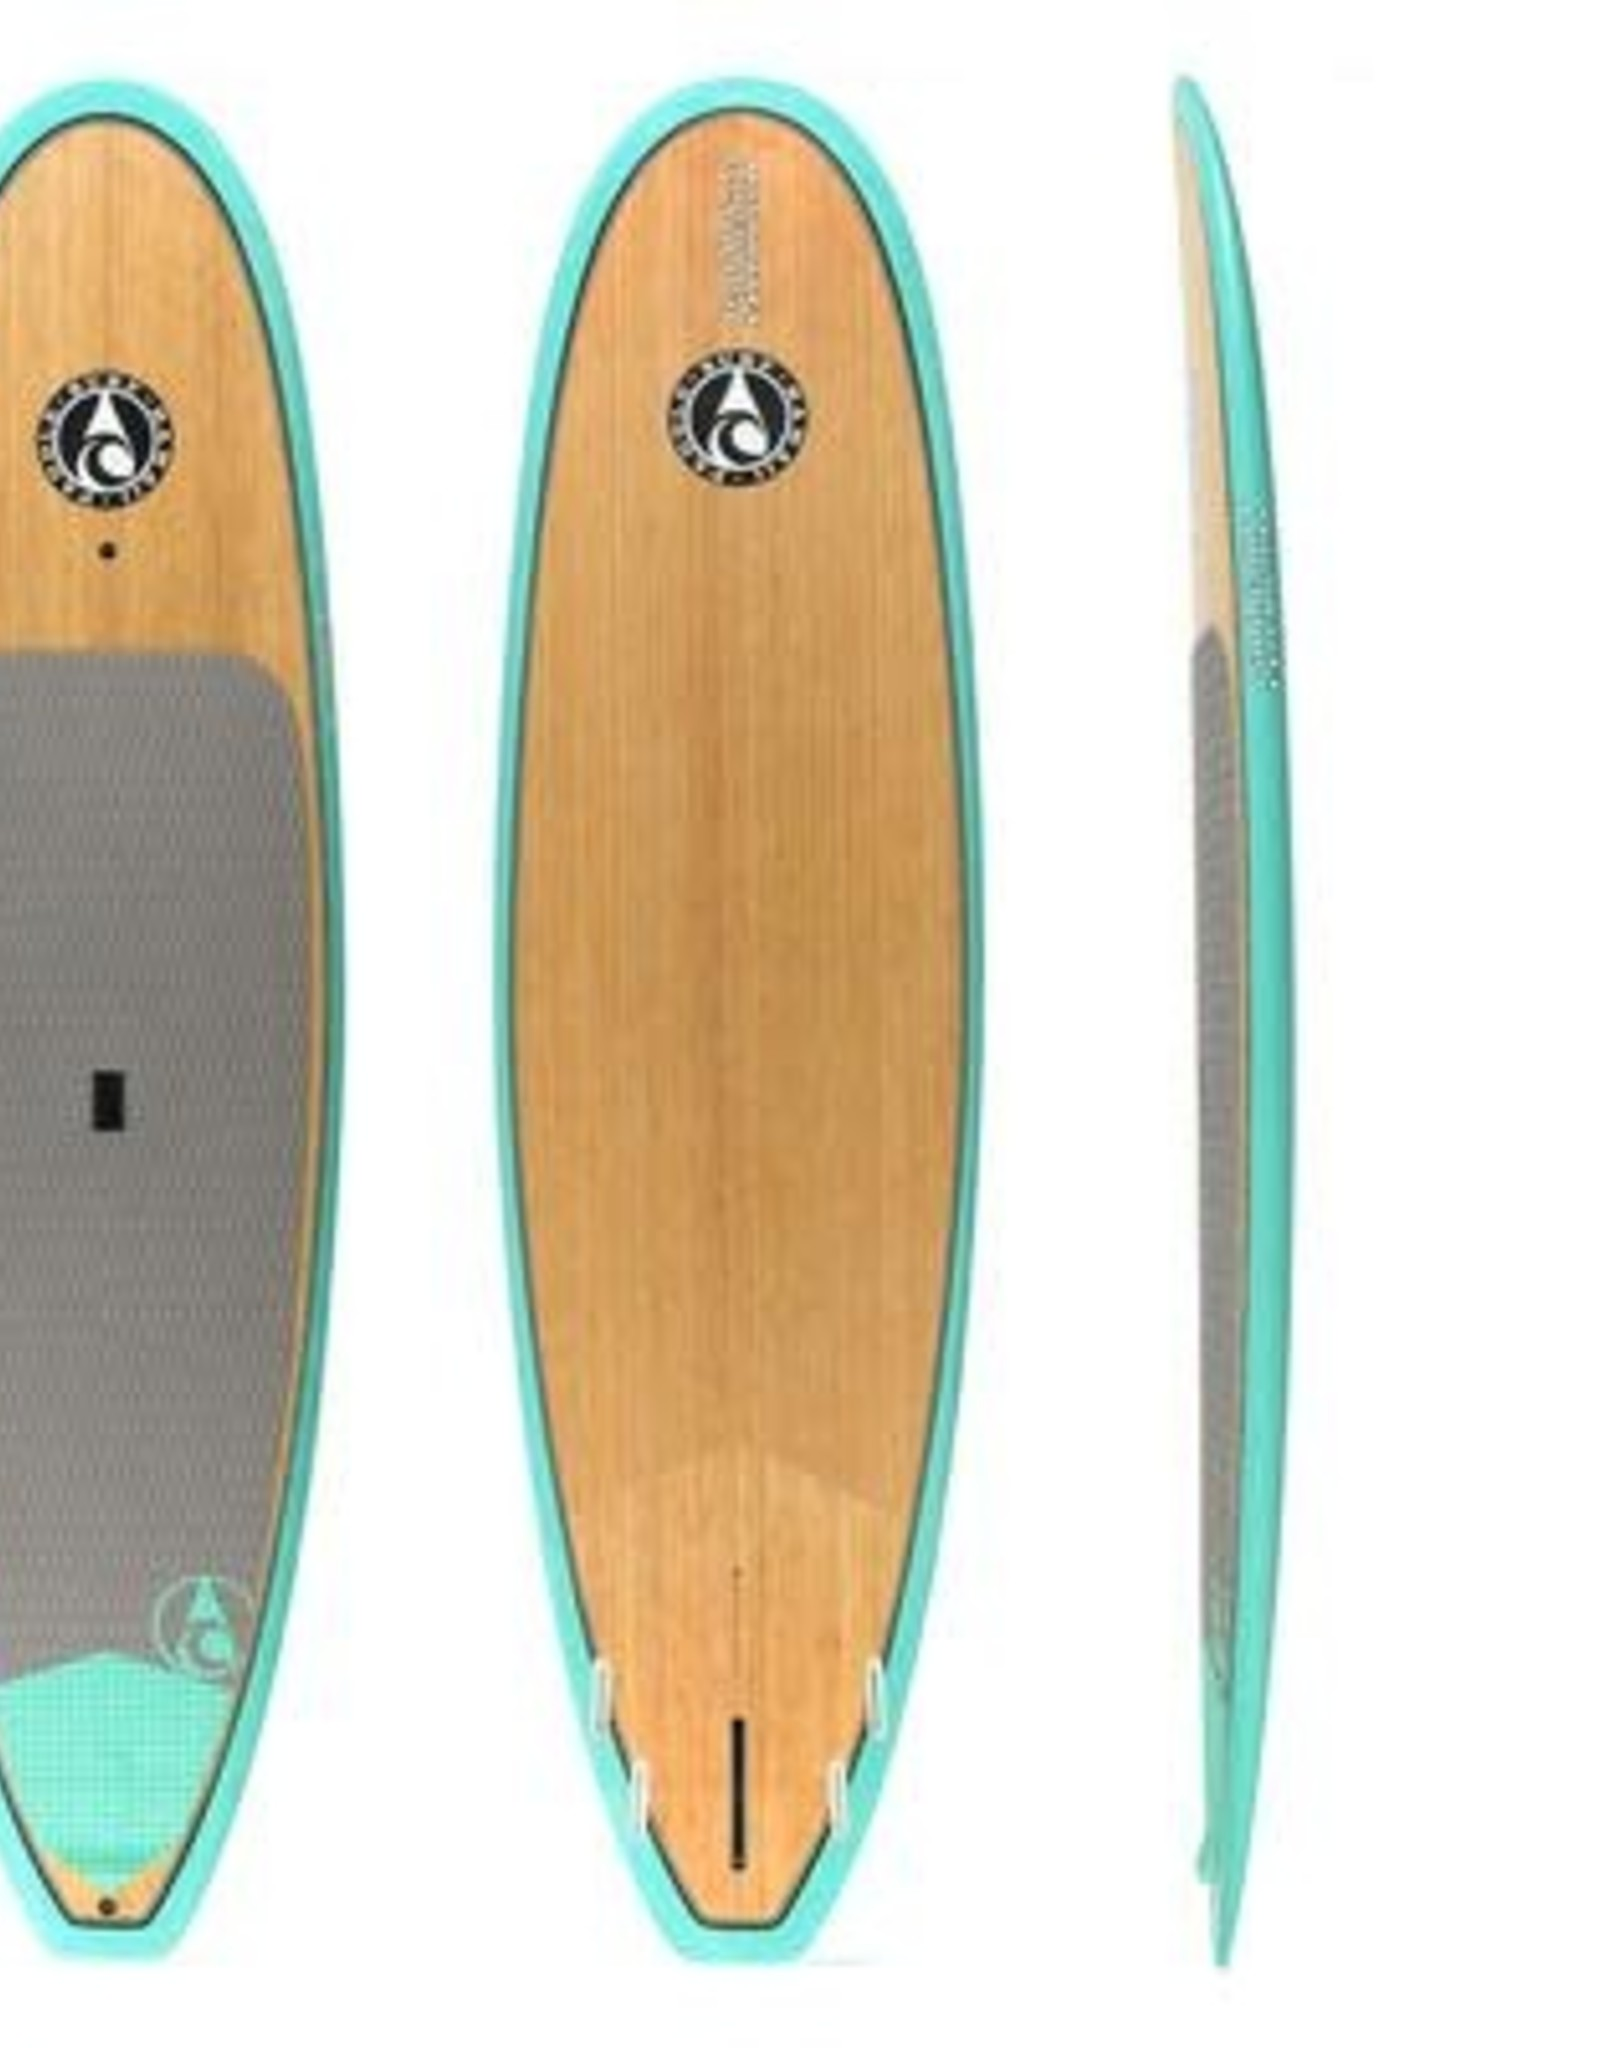 Paddle Surf Hawaii Paddle Surf Hawaii Wide All Arounder 10'6